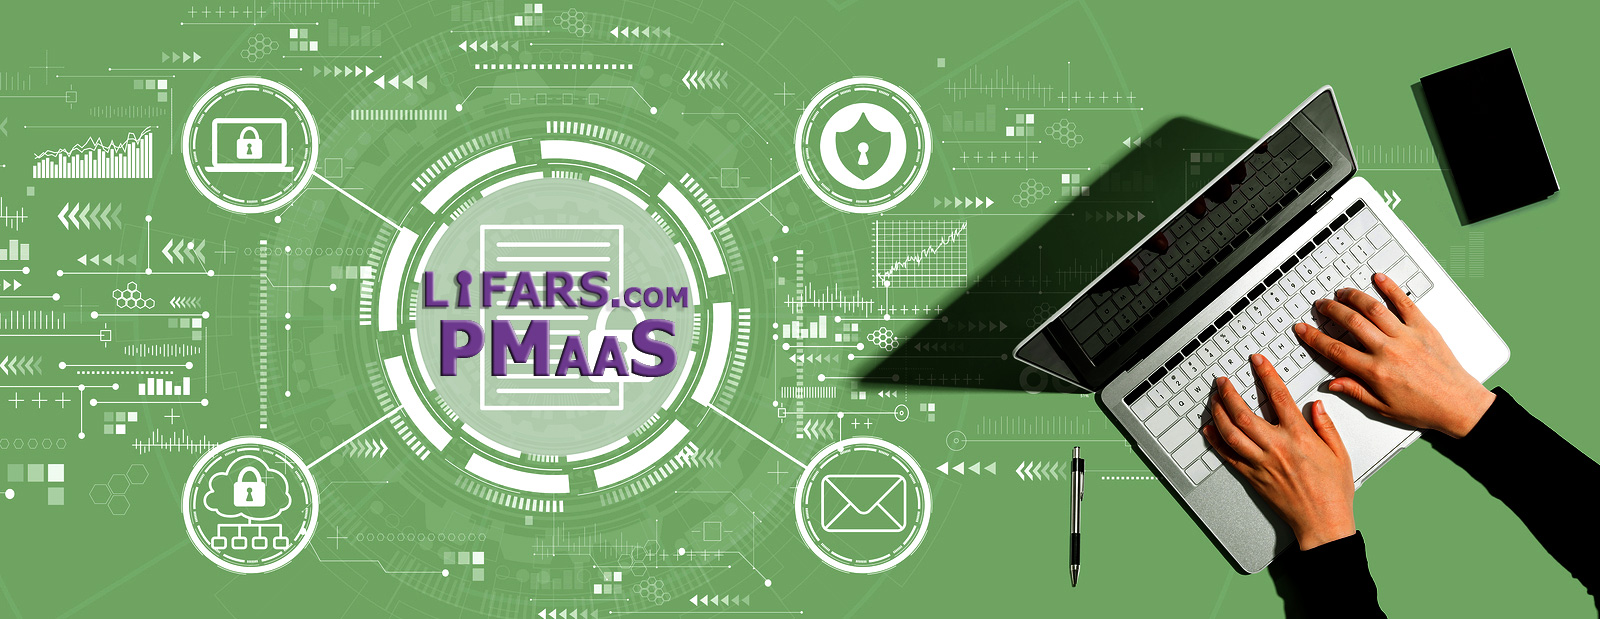 LIFARS Project Management as a Service (PMaaS) is designed to assist you to successfully plan and deliver time constrained high- profile security projects